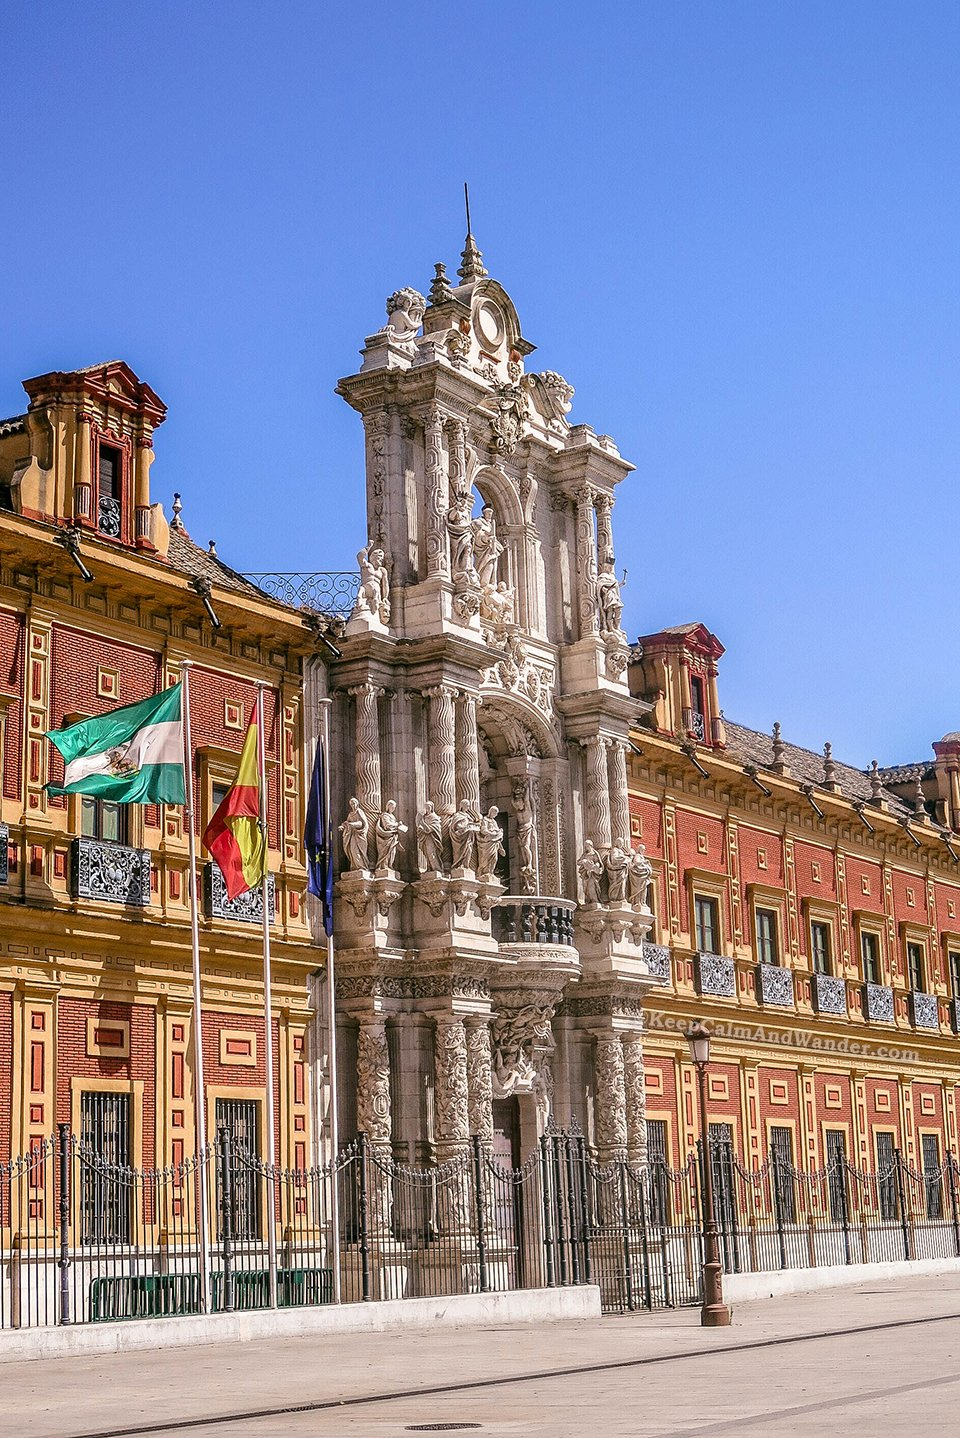 The Palacio de San Telmo is Sevilla's most impressive Baroque building.